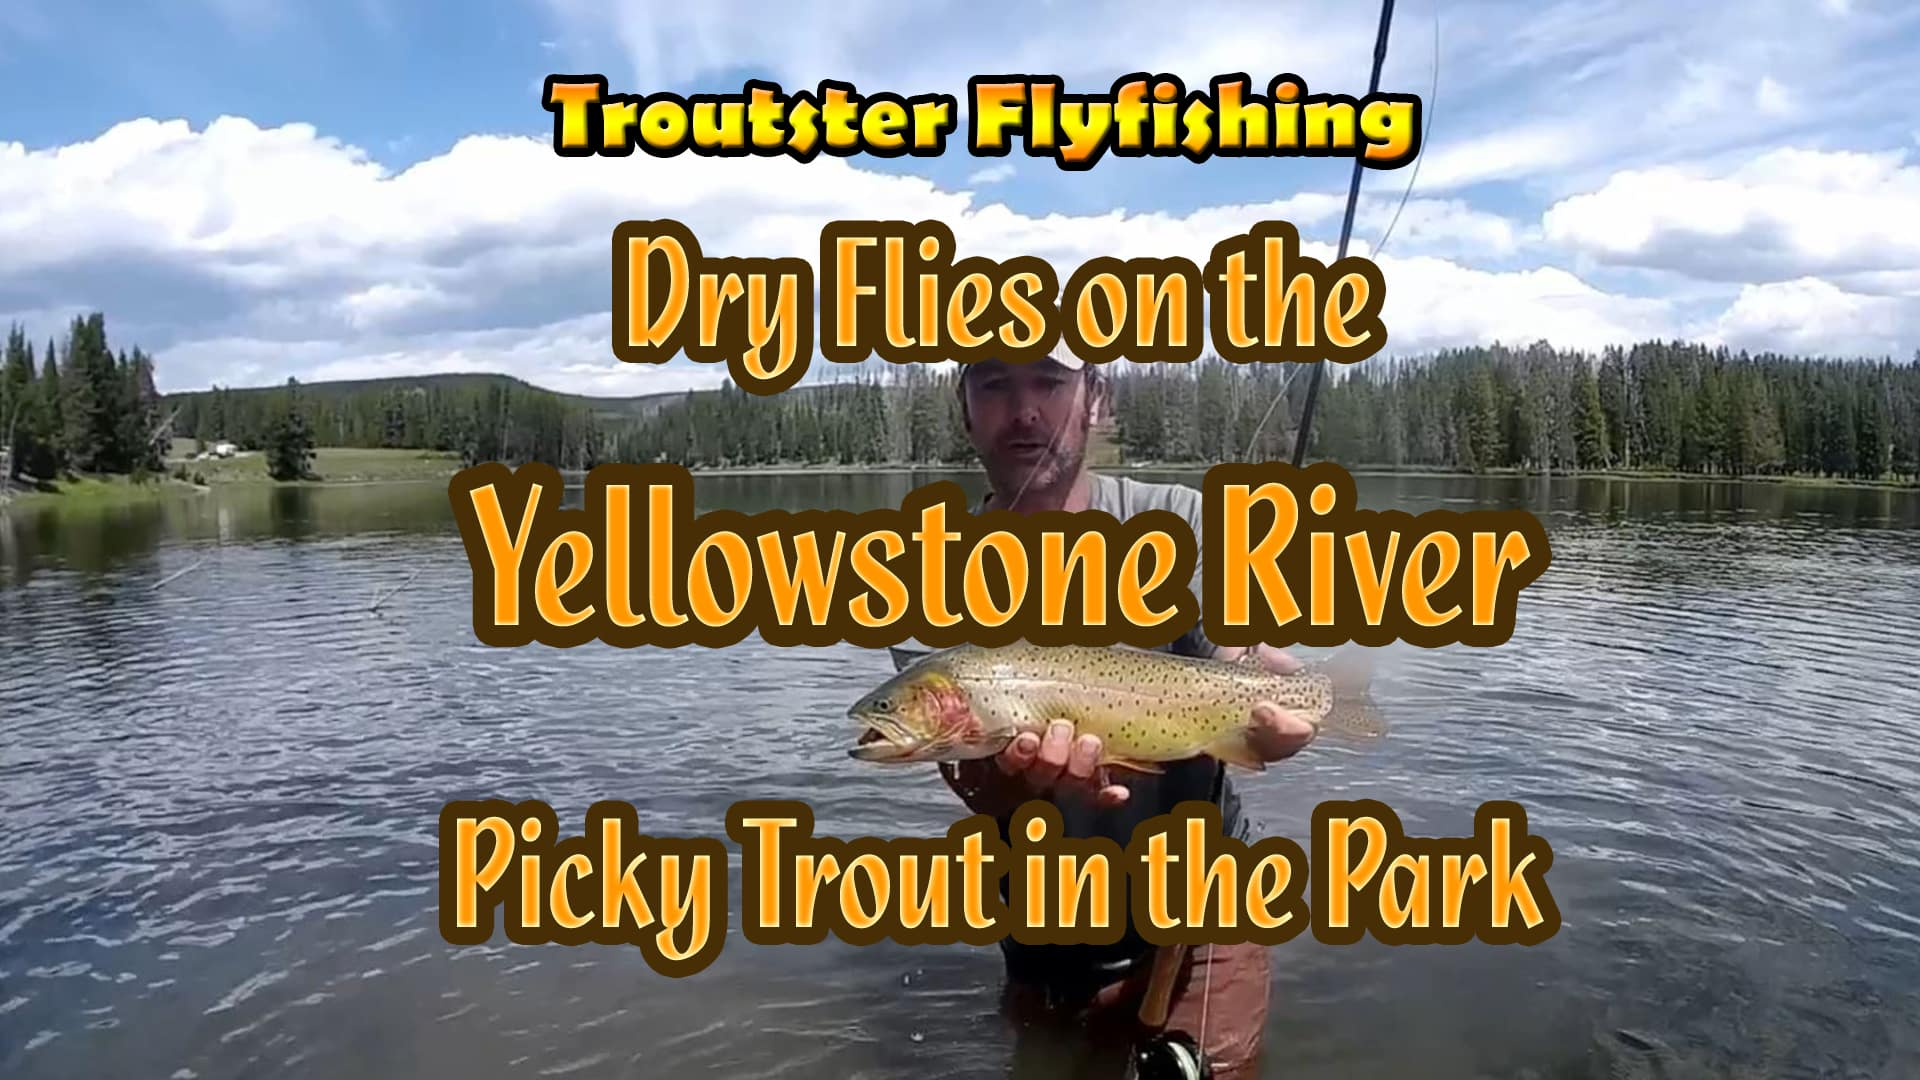 Catching trout on the Yellowstone river in the National park